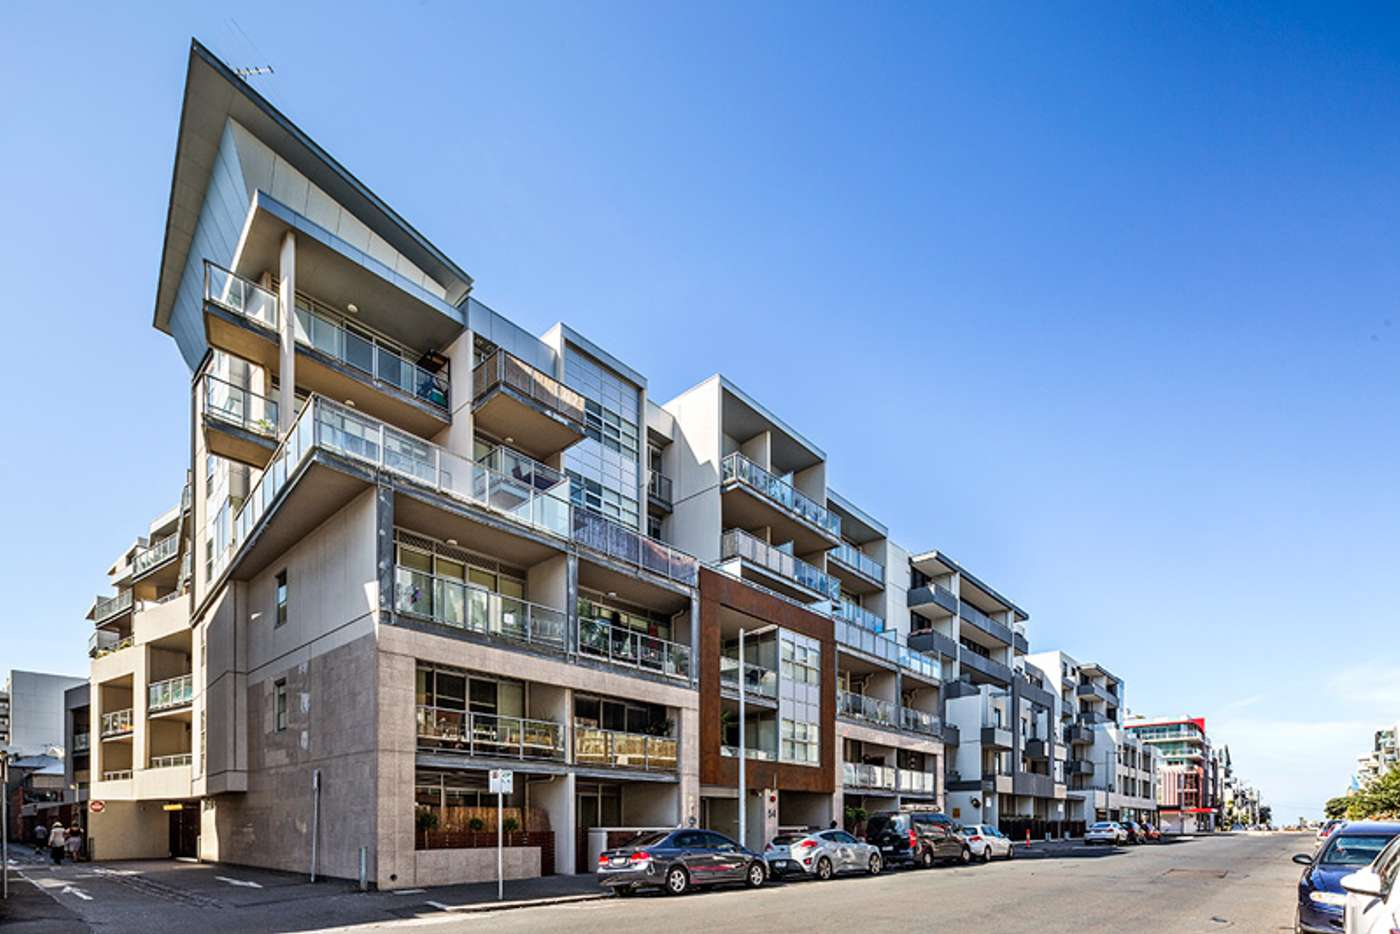 Main view of Homely apartment listing, 209/54 Nott Street, Port Melbourne VIC 3207